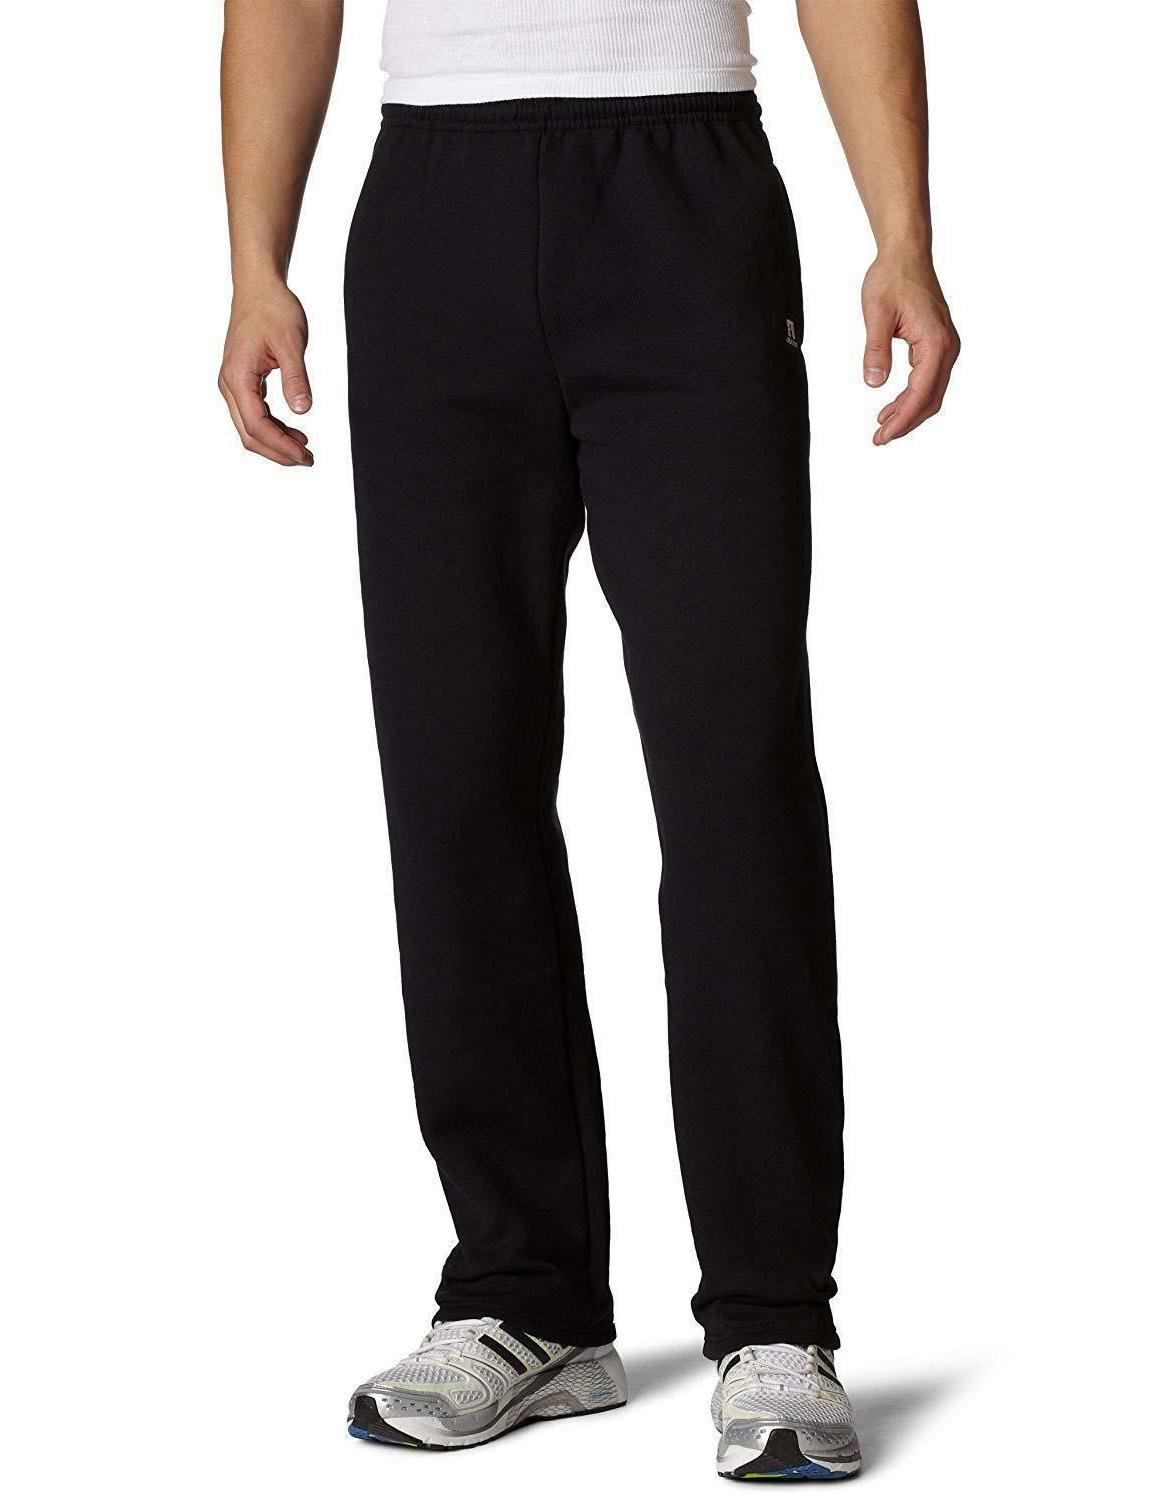 Russell Athletic Dri-Power Open Sweatpants with Pockets